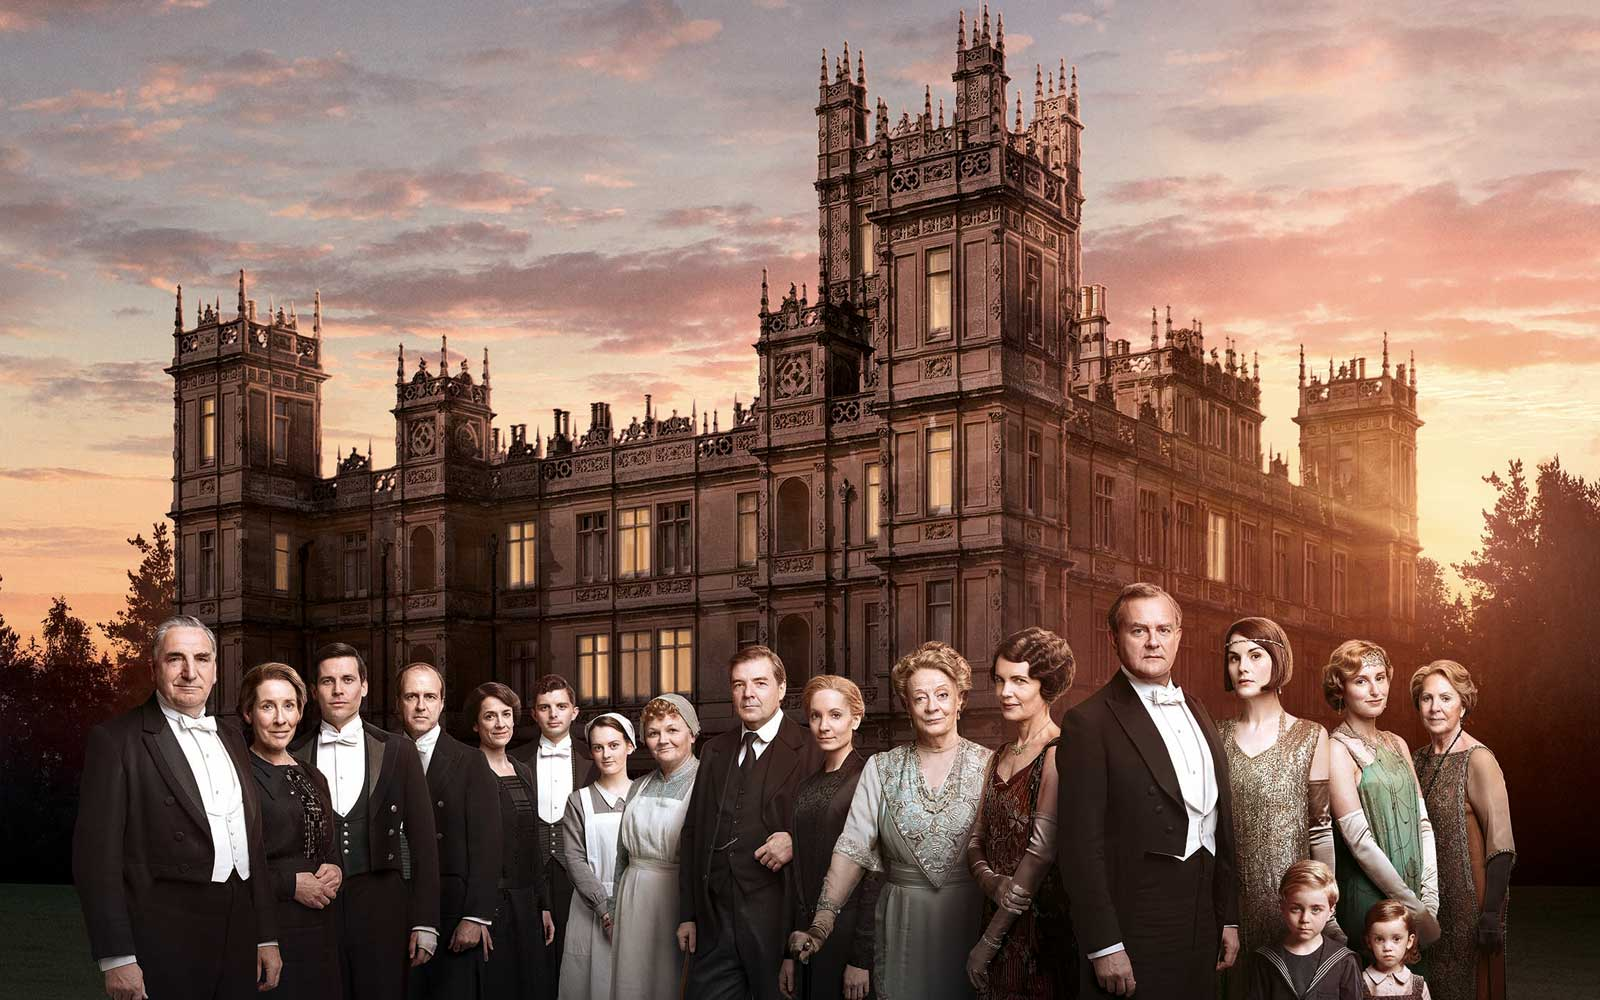 A 'Downton Abbey' movie is really happening: Here's what we know